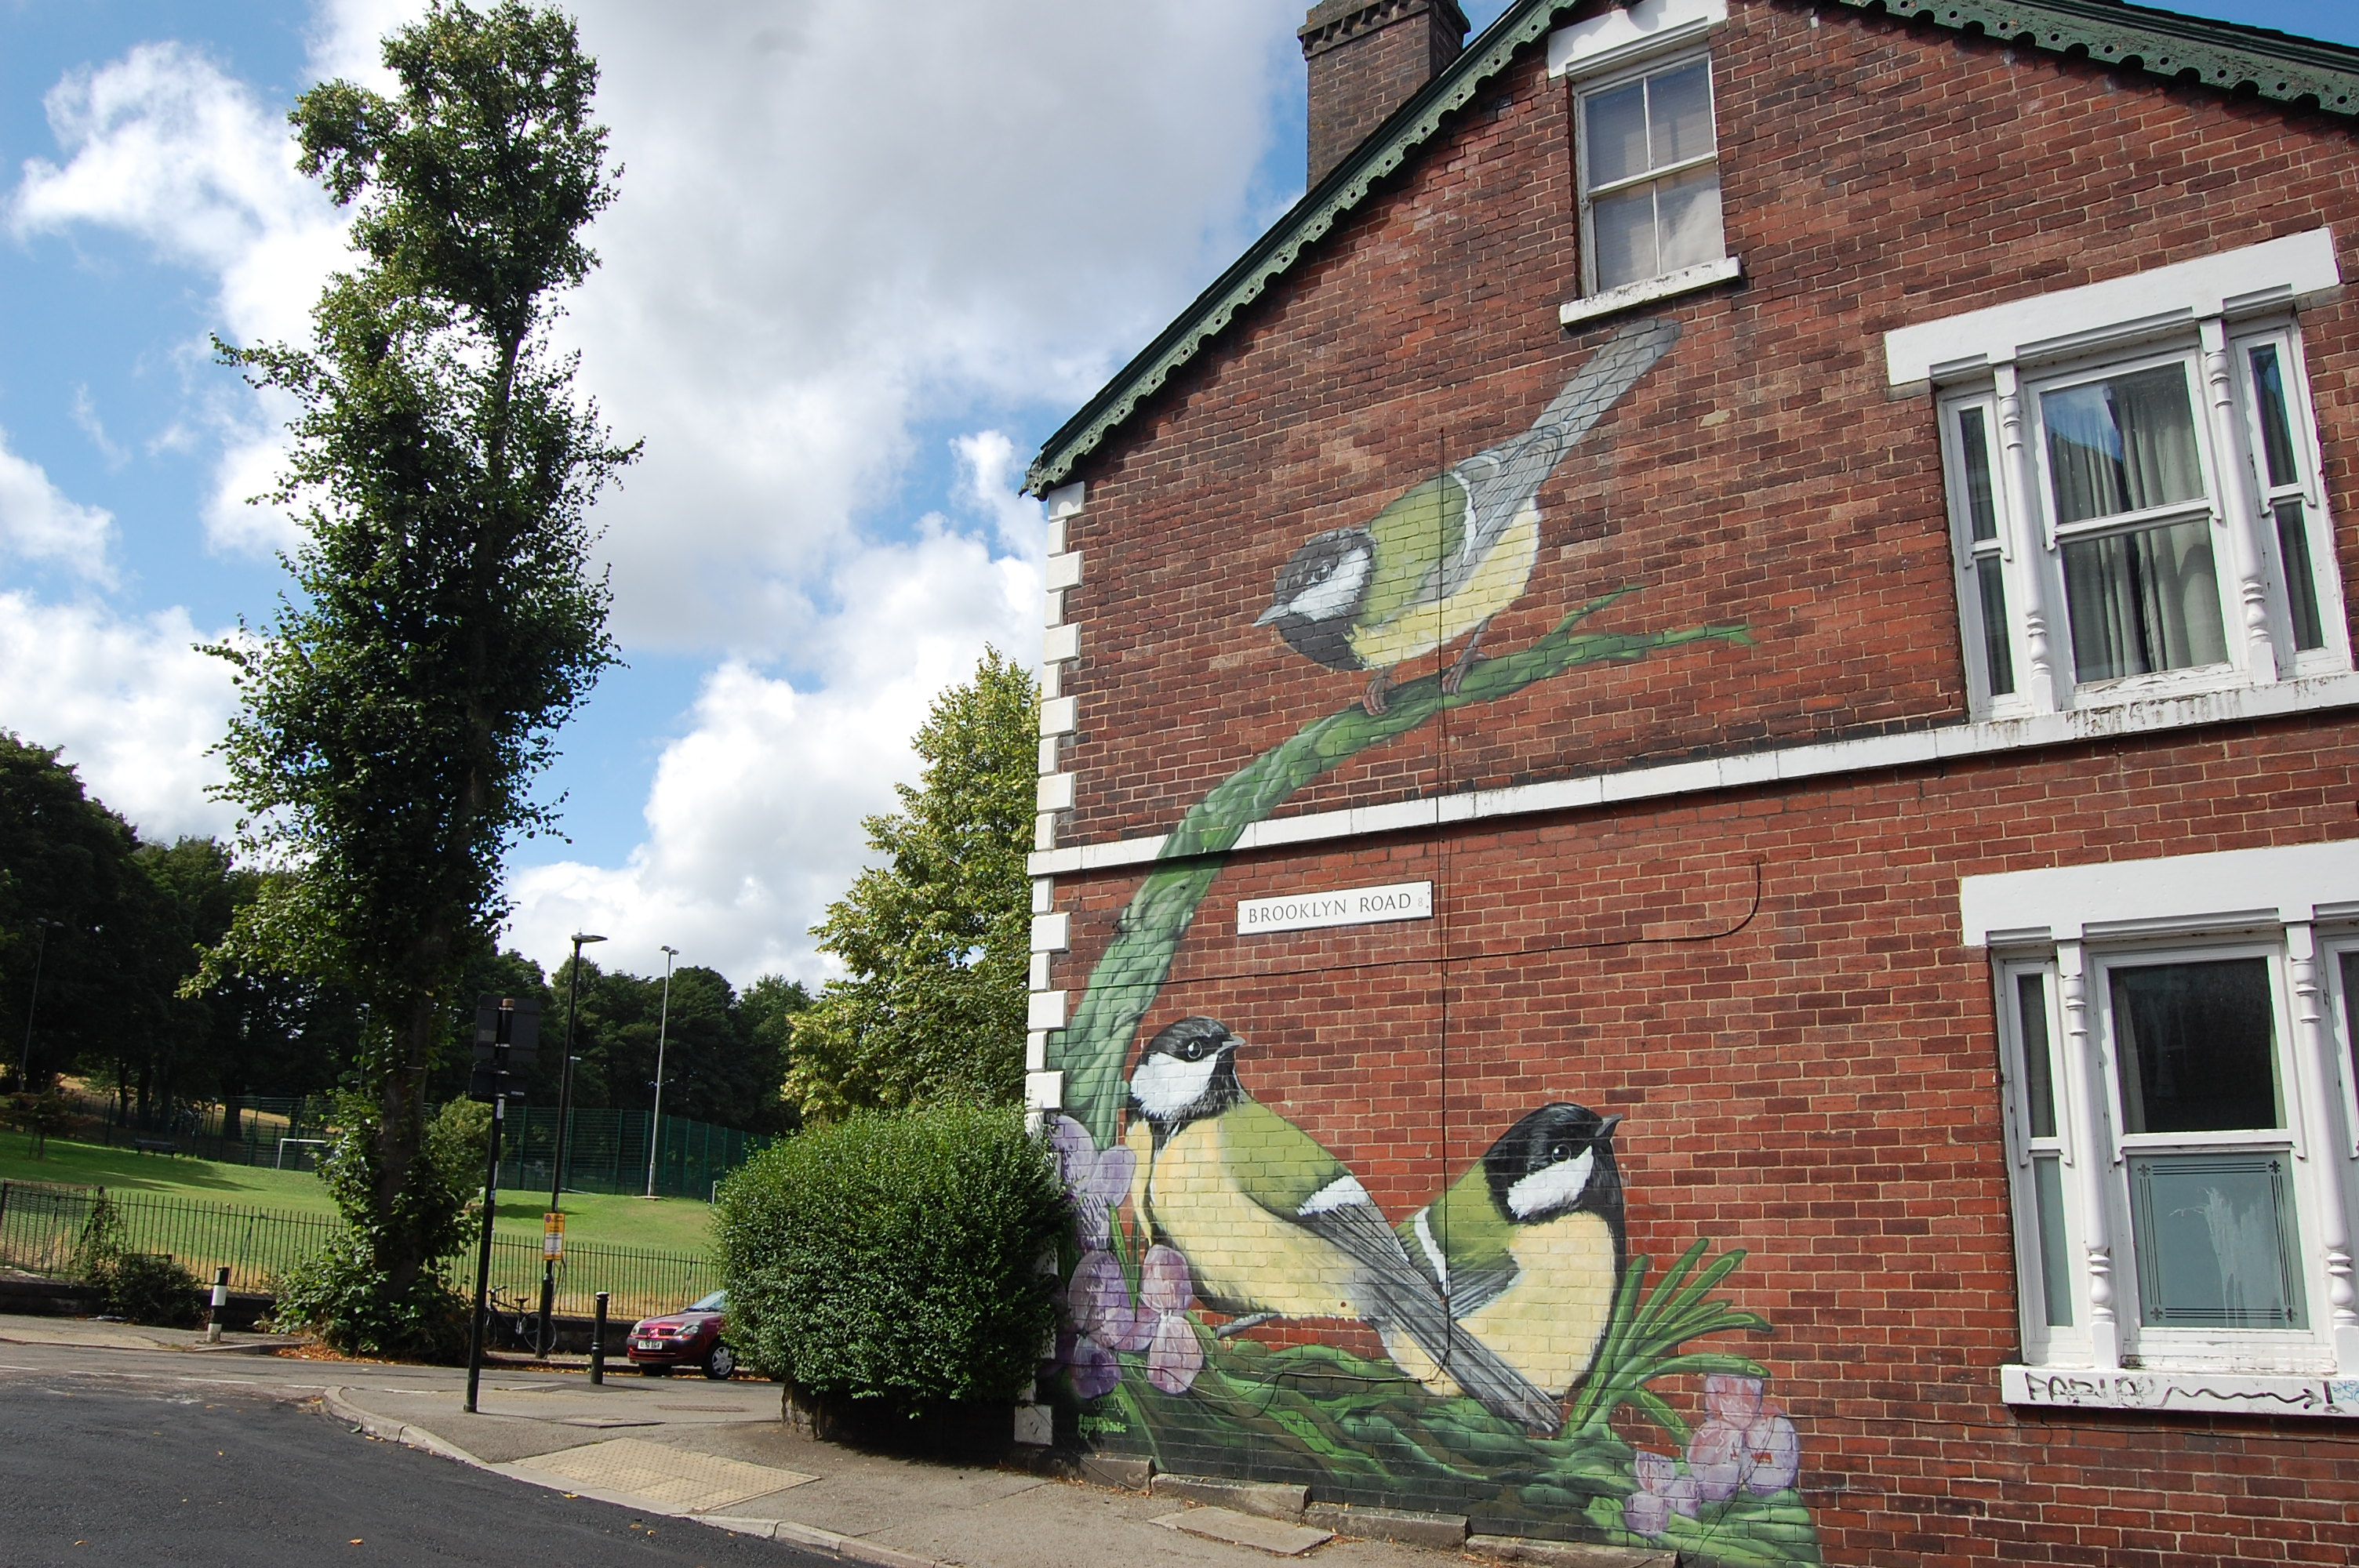 Street art depicting three Great Tit birds among flowers on the side of a house on Brooklyn Road, Meersbrook, Sheffield